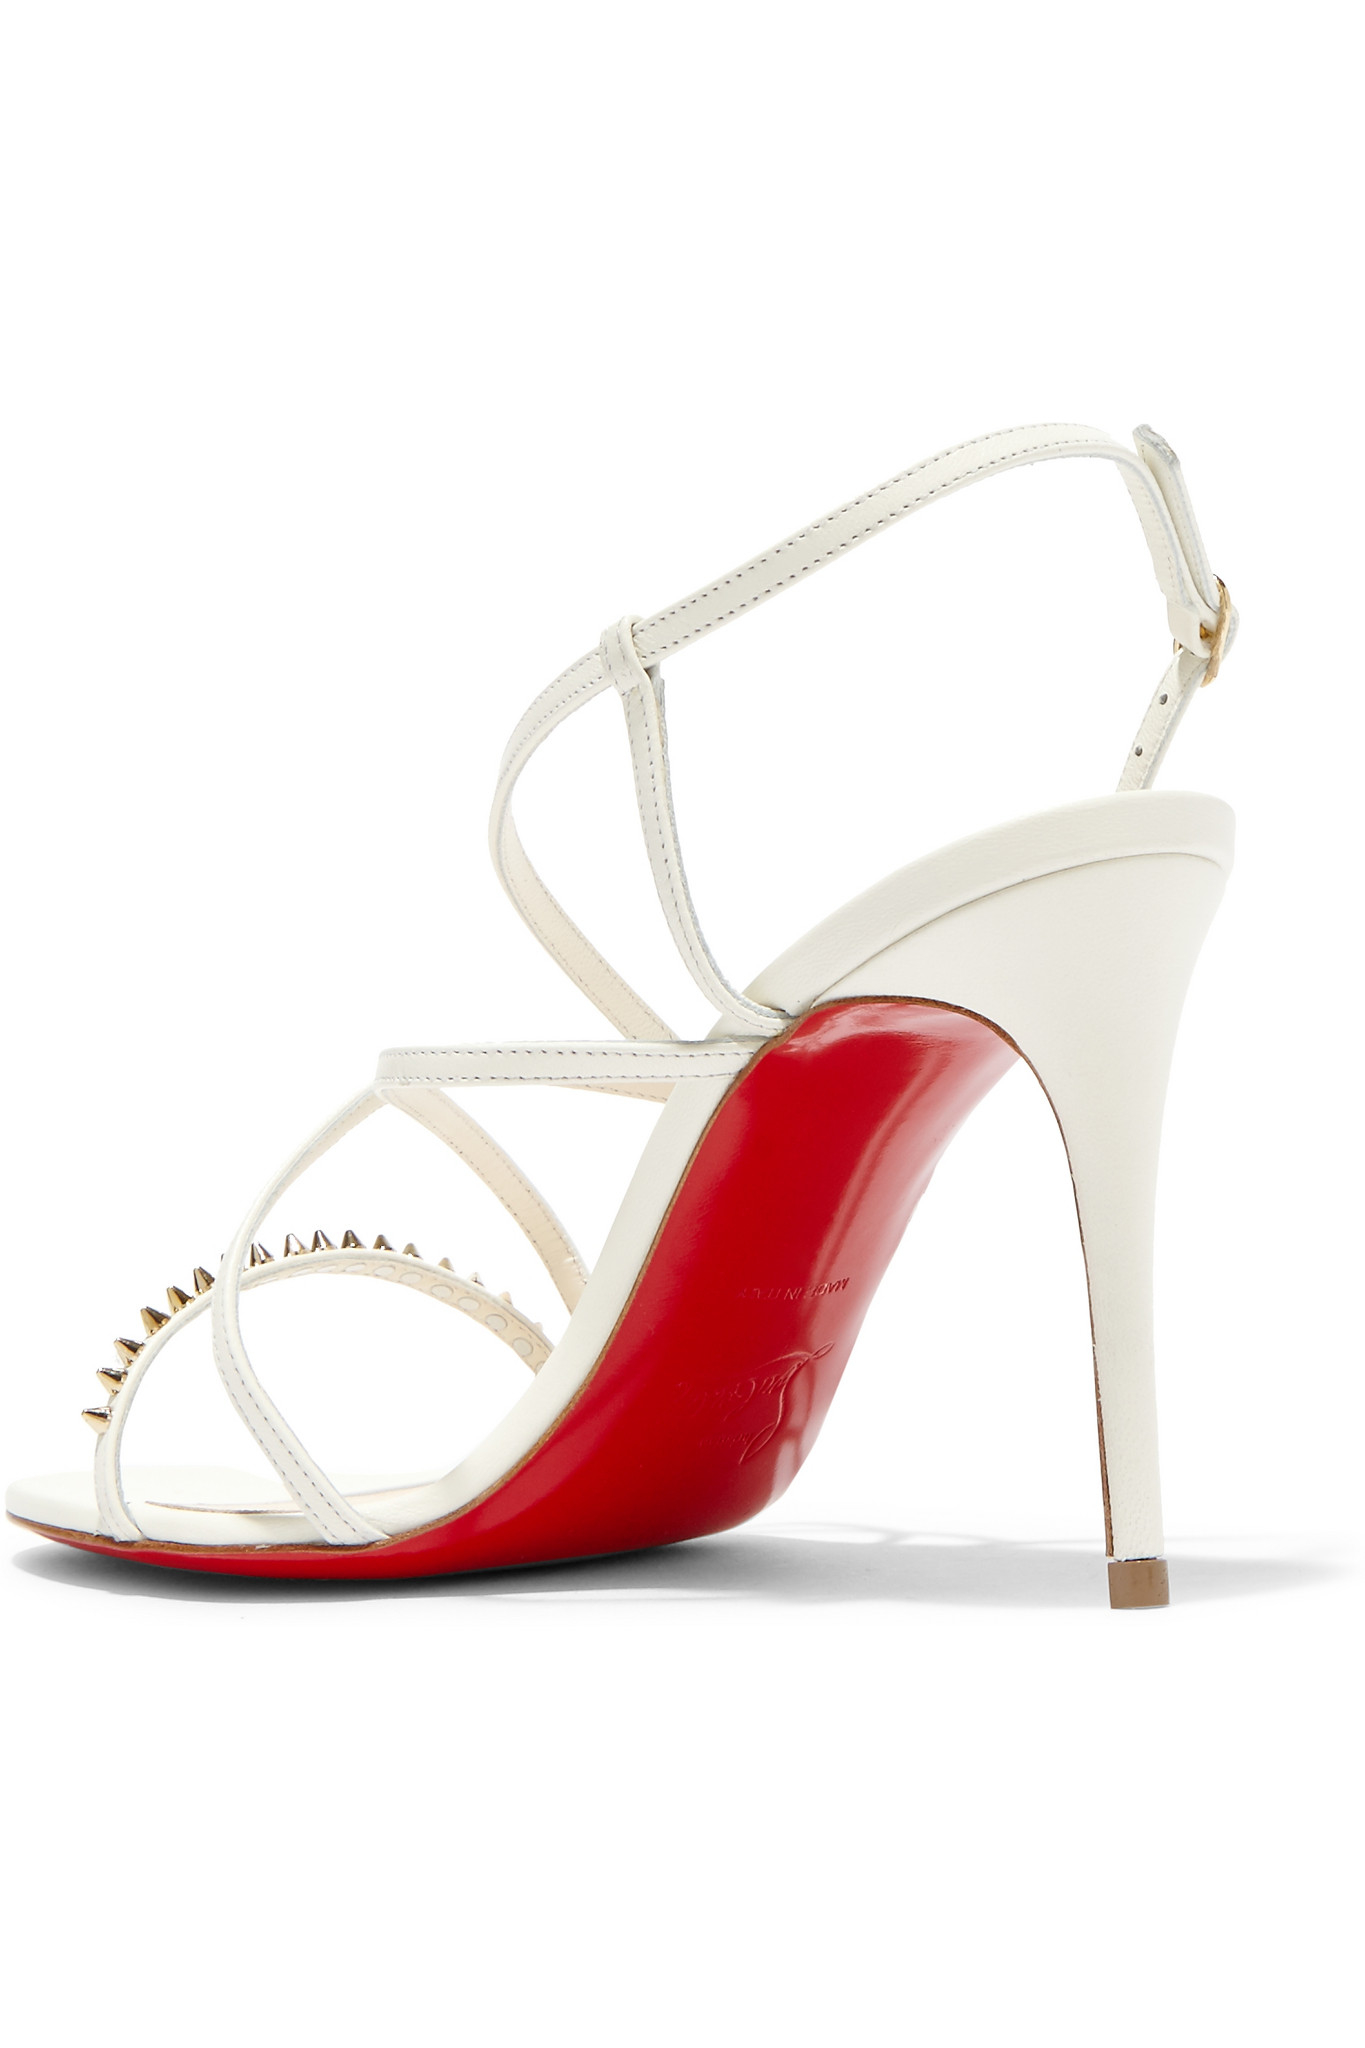 Christian Louboutin Gwinispike 85 Leather Sandals discount fake outlet deals sale sneakernews low price fee shipping sale online rcTg1X8YD